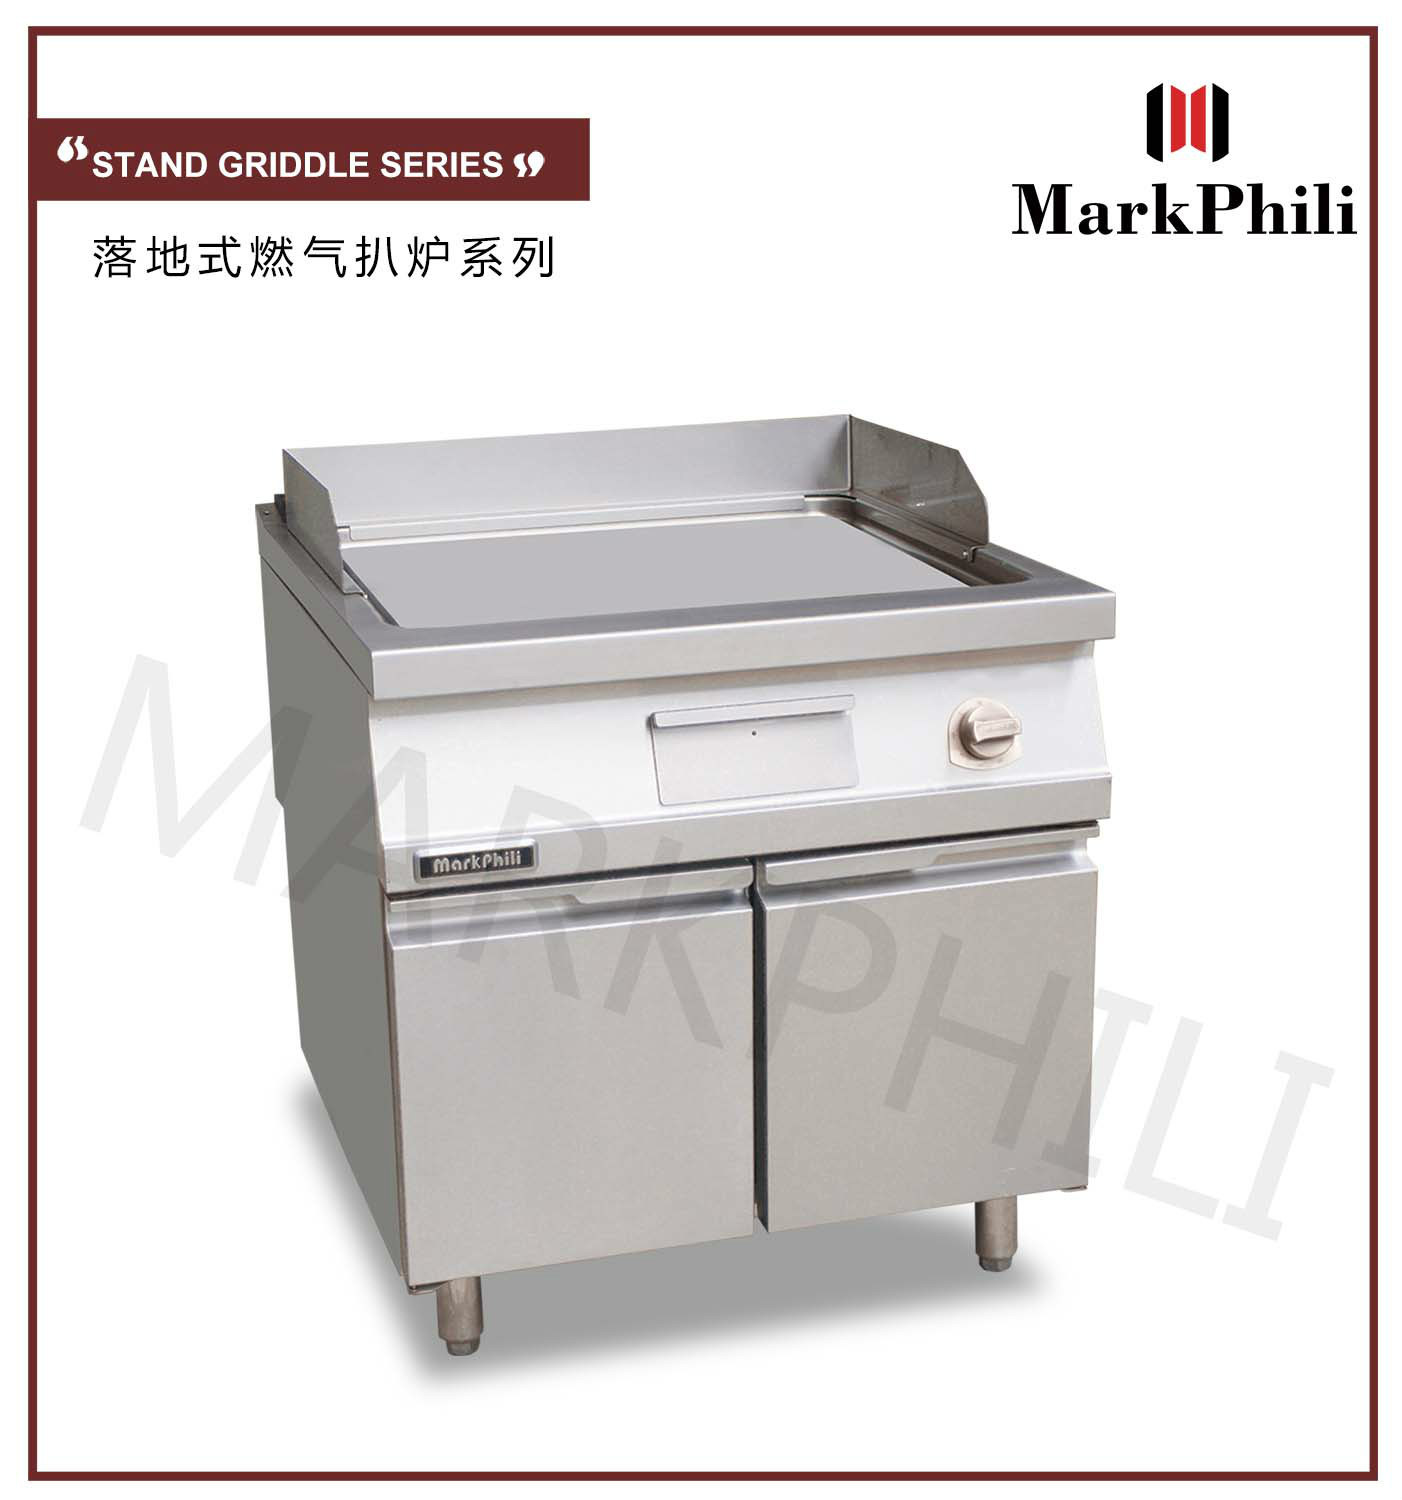 China Gas Griddle Plate with Cabinet for Western Restaurant